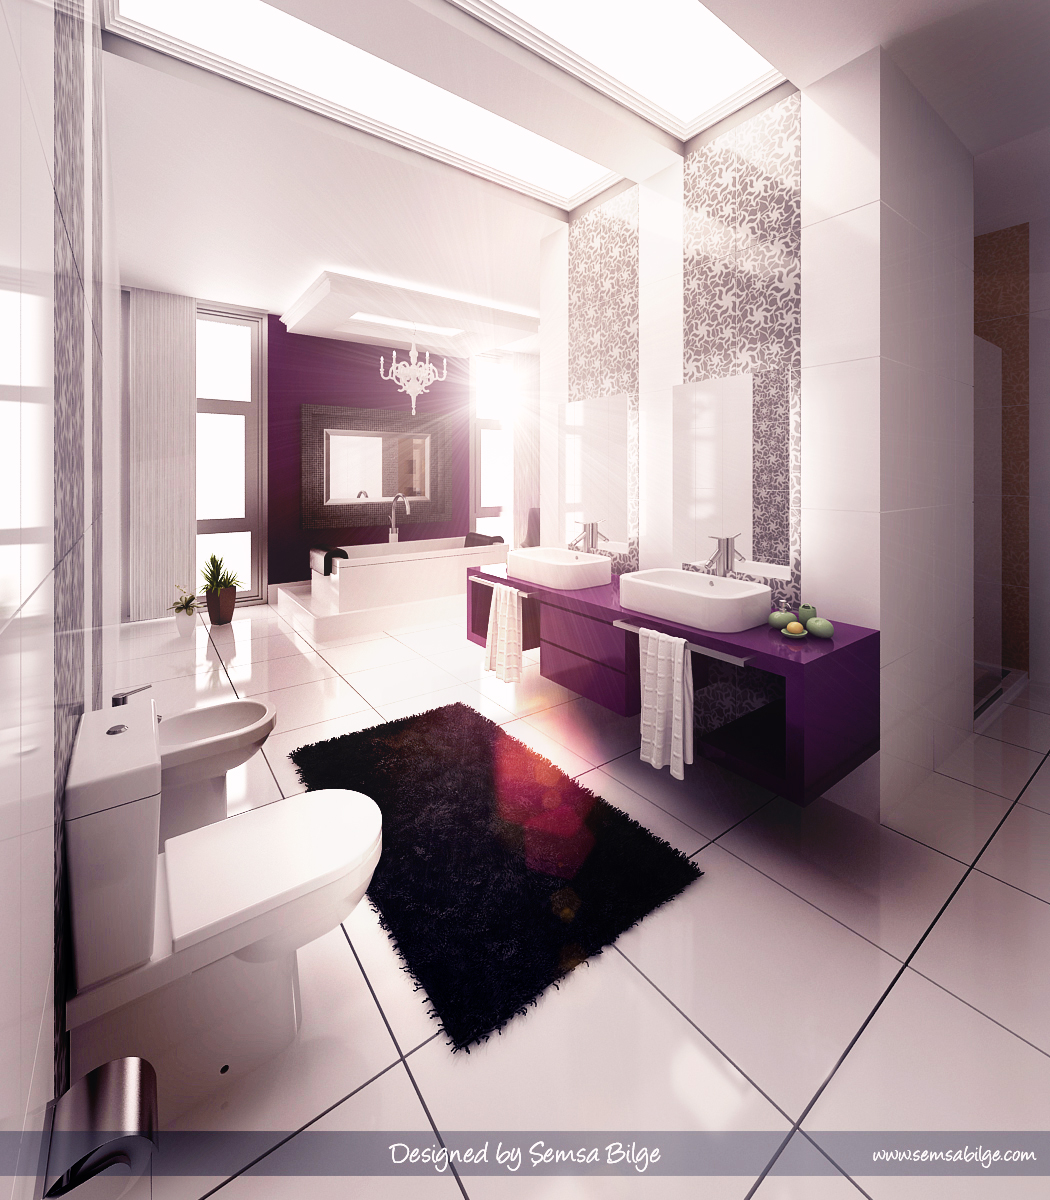 Beautiful bathroom designs ideas interior design for Pretty bathrooms